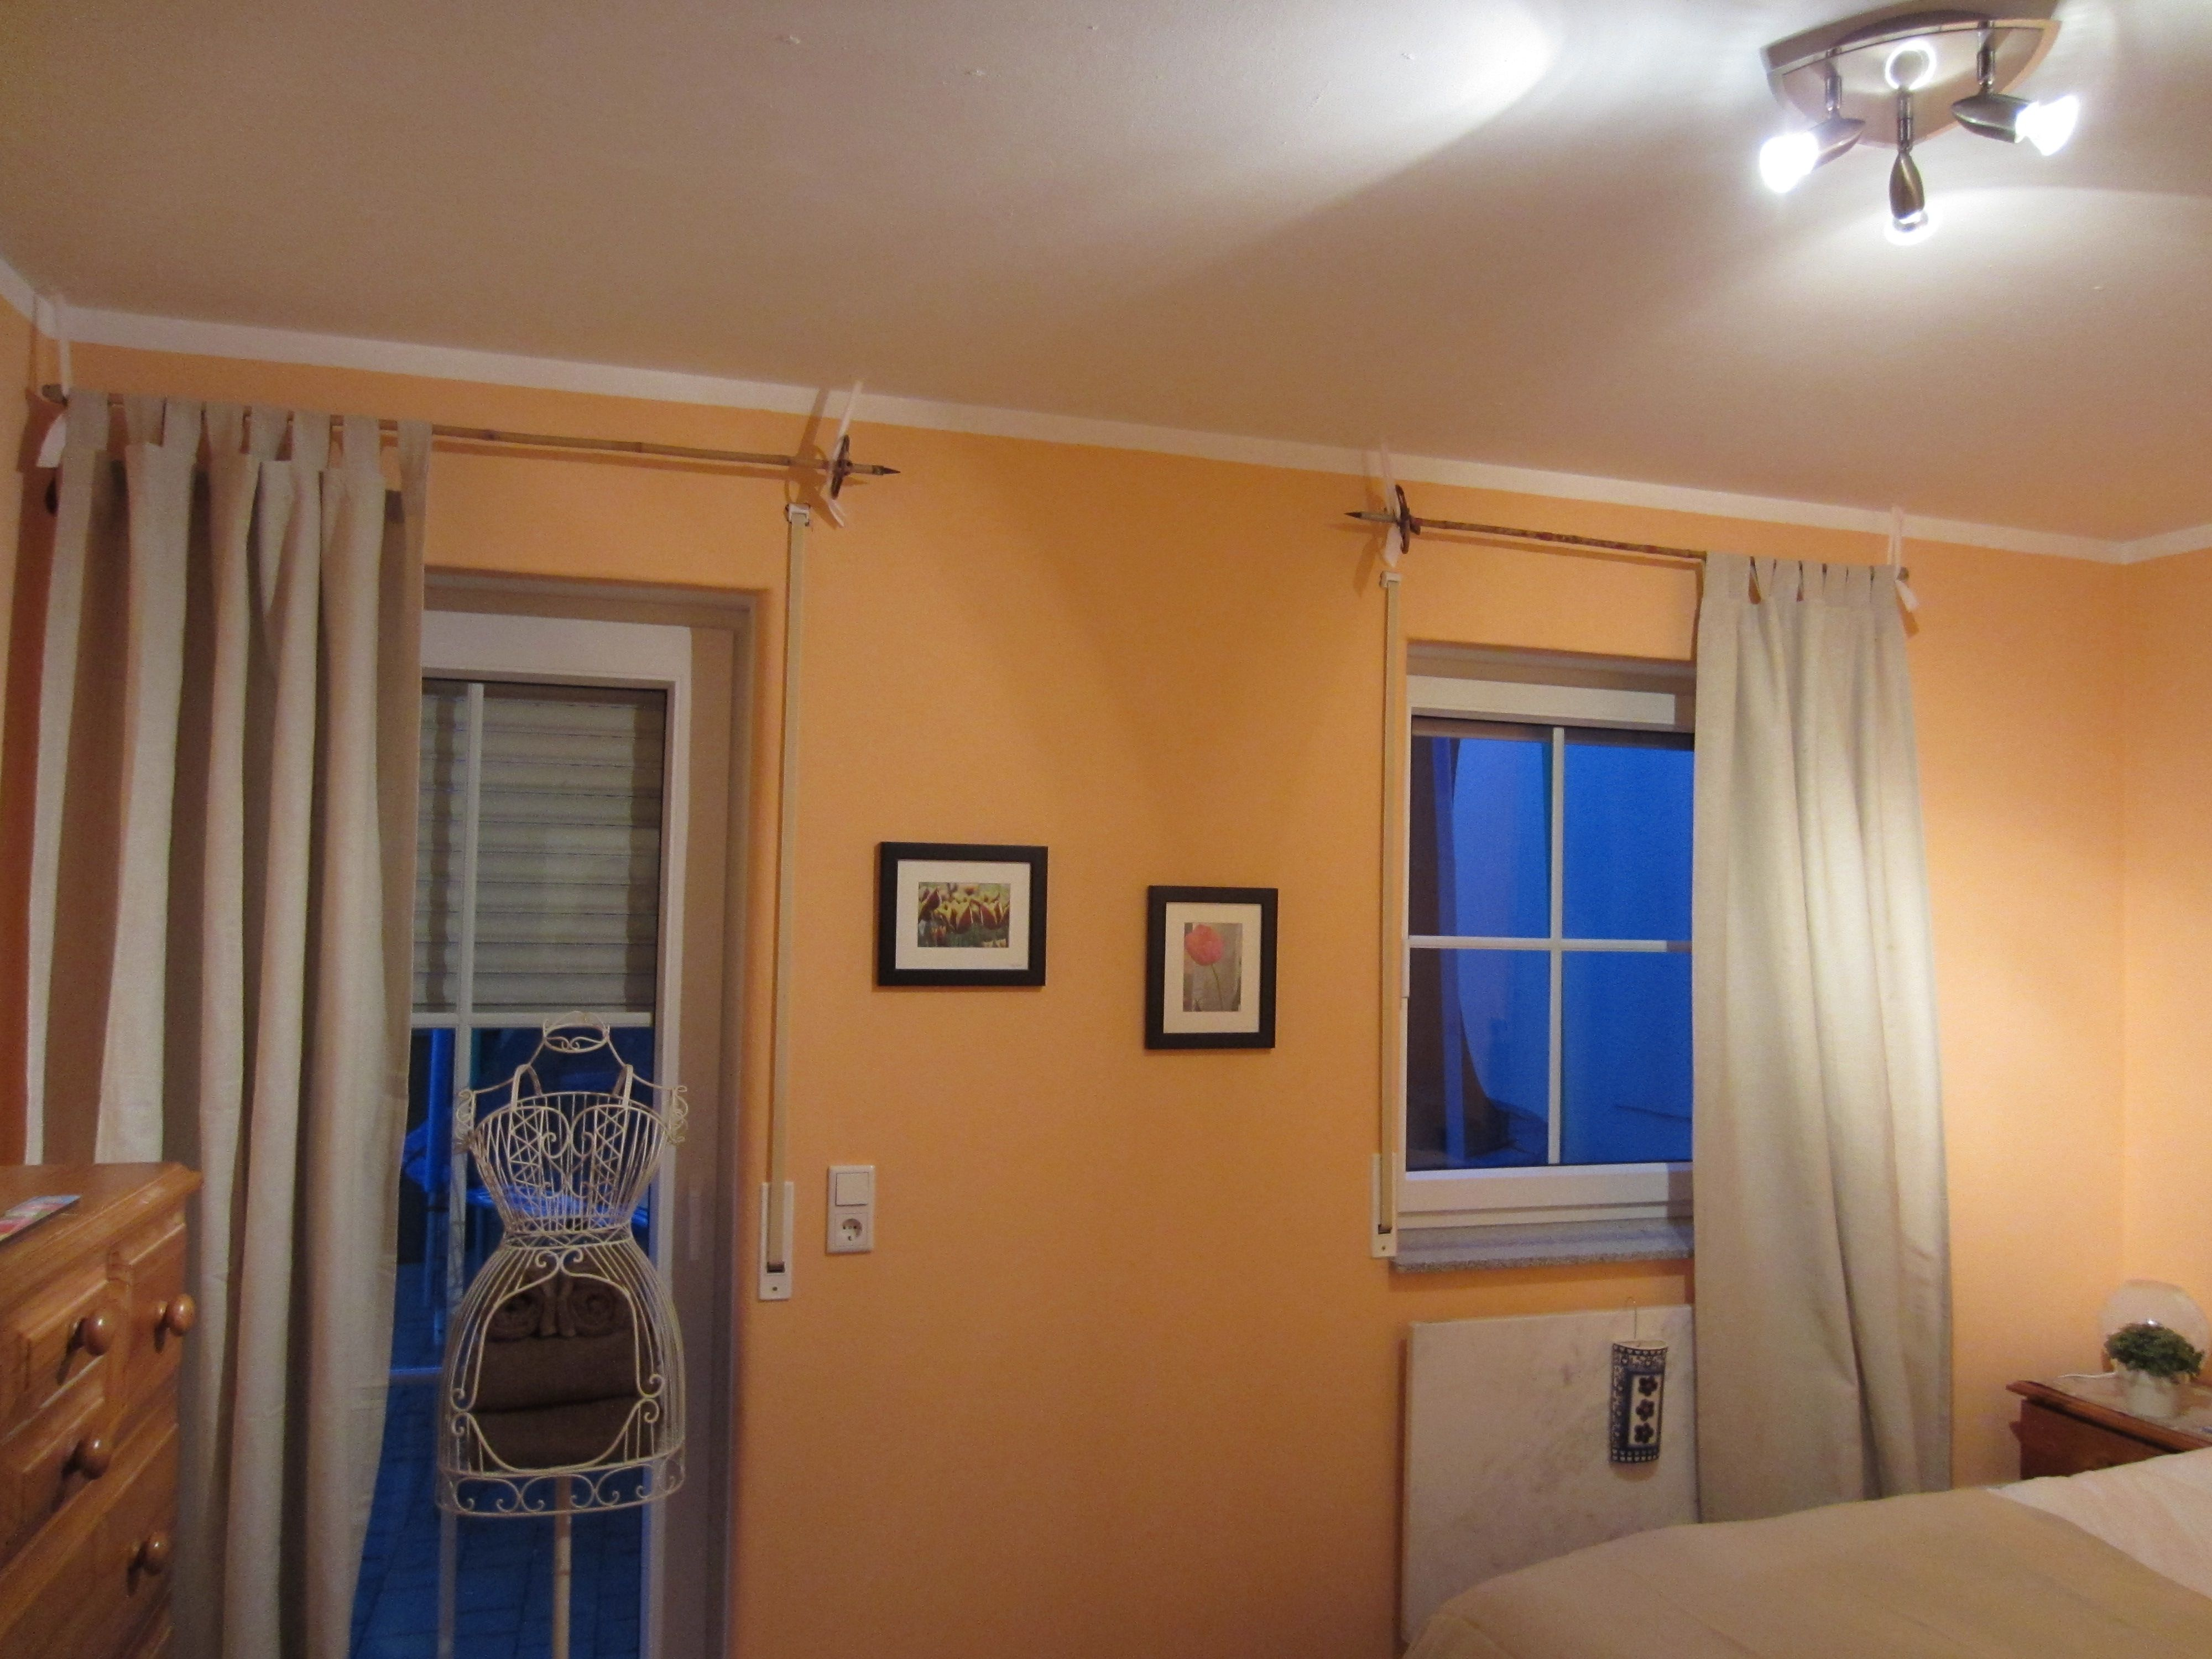 How To Hang Curtain Rods On Concrete Walls Www